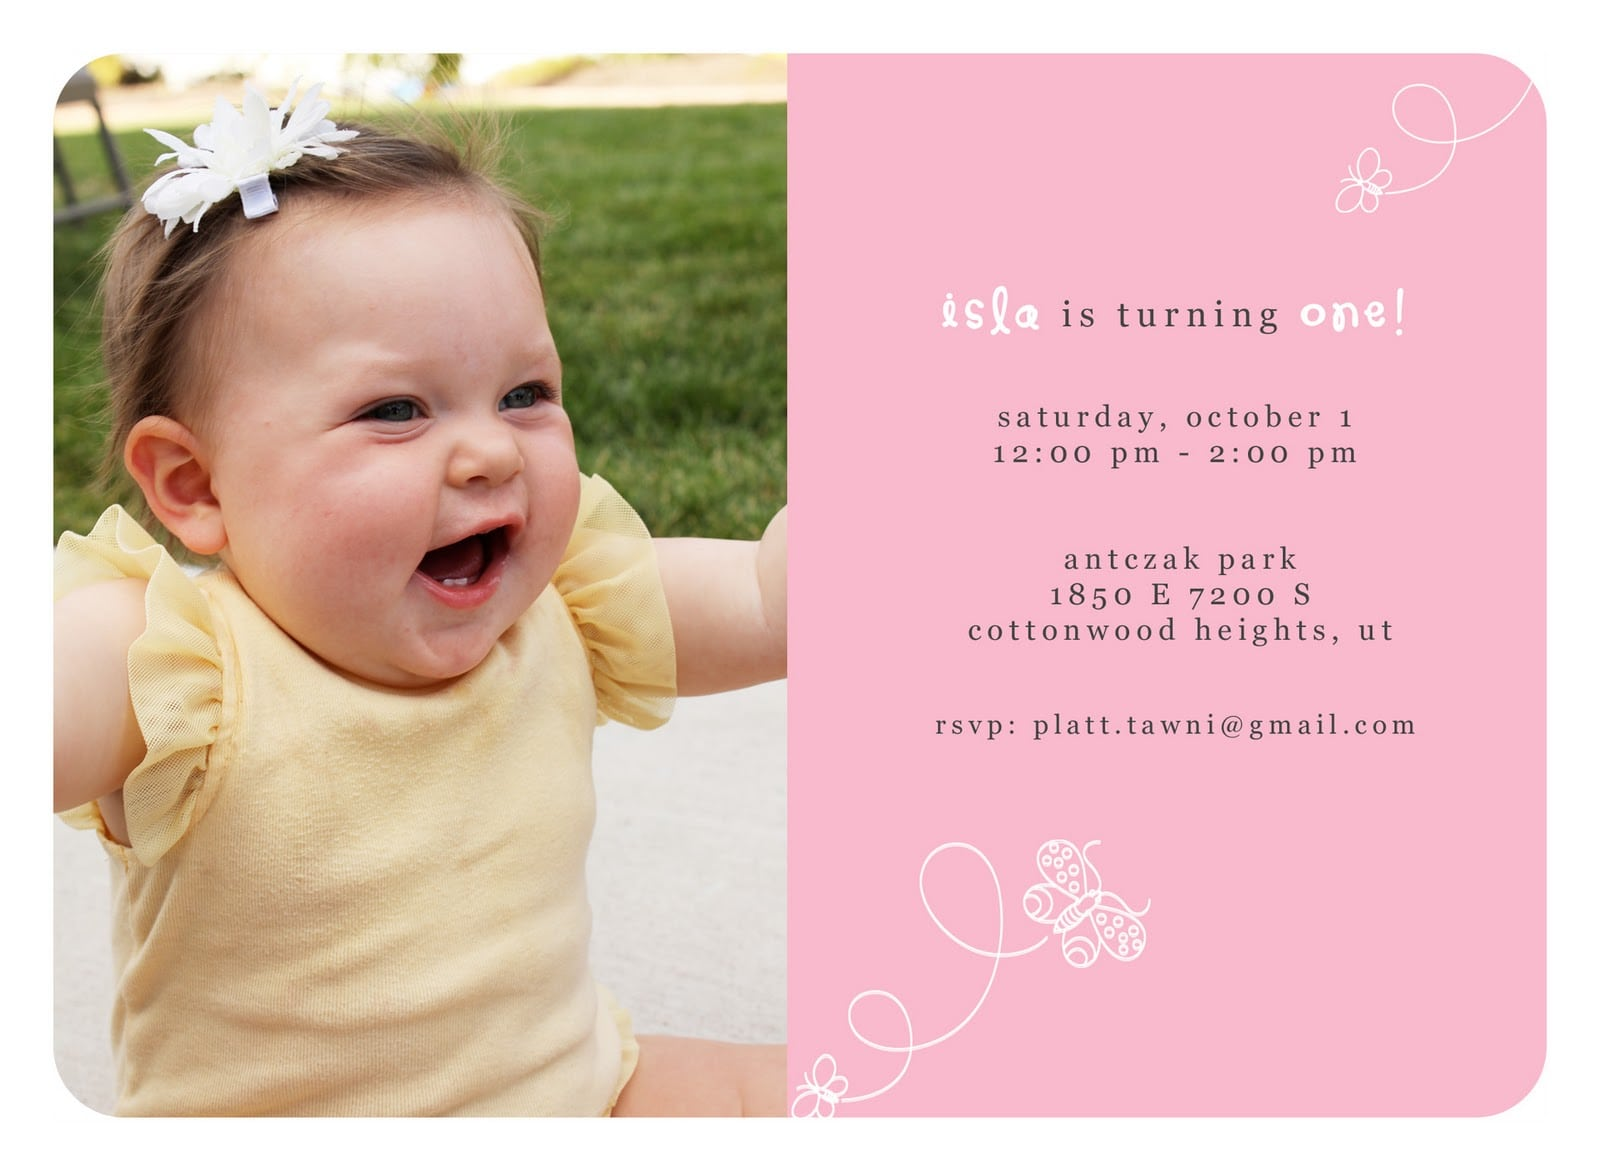 1st birthday invitation template etamemibawa 1st birthday invitation template bookmarktalkfo